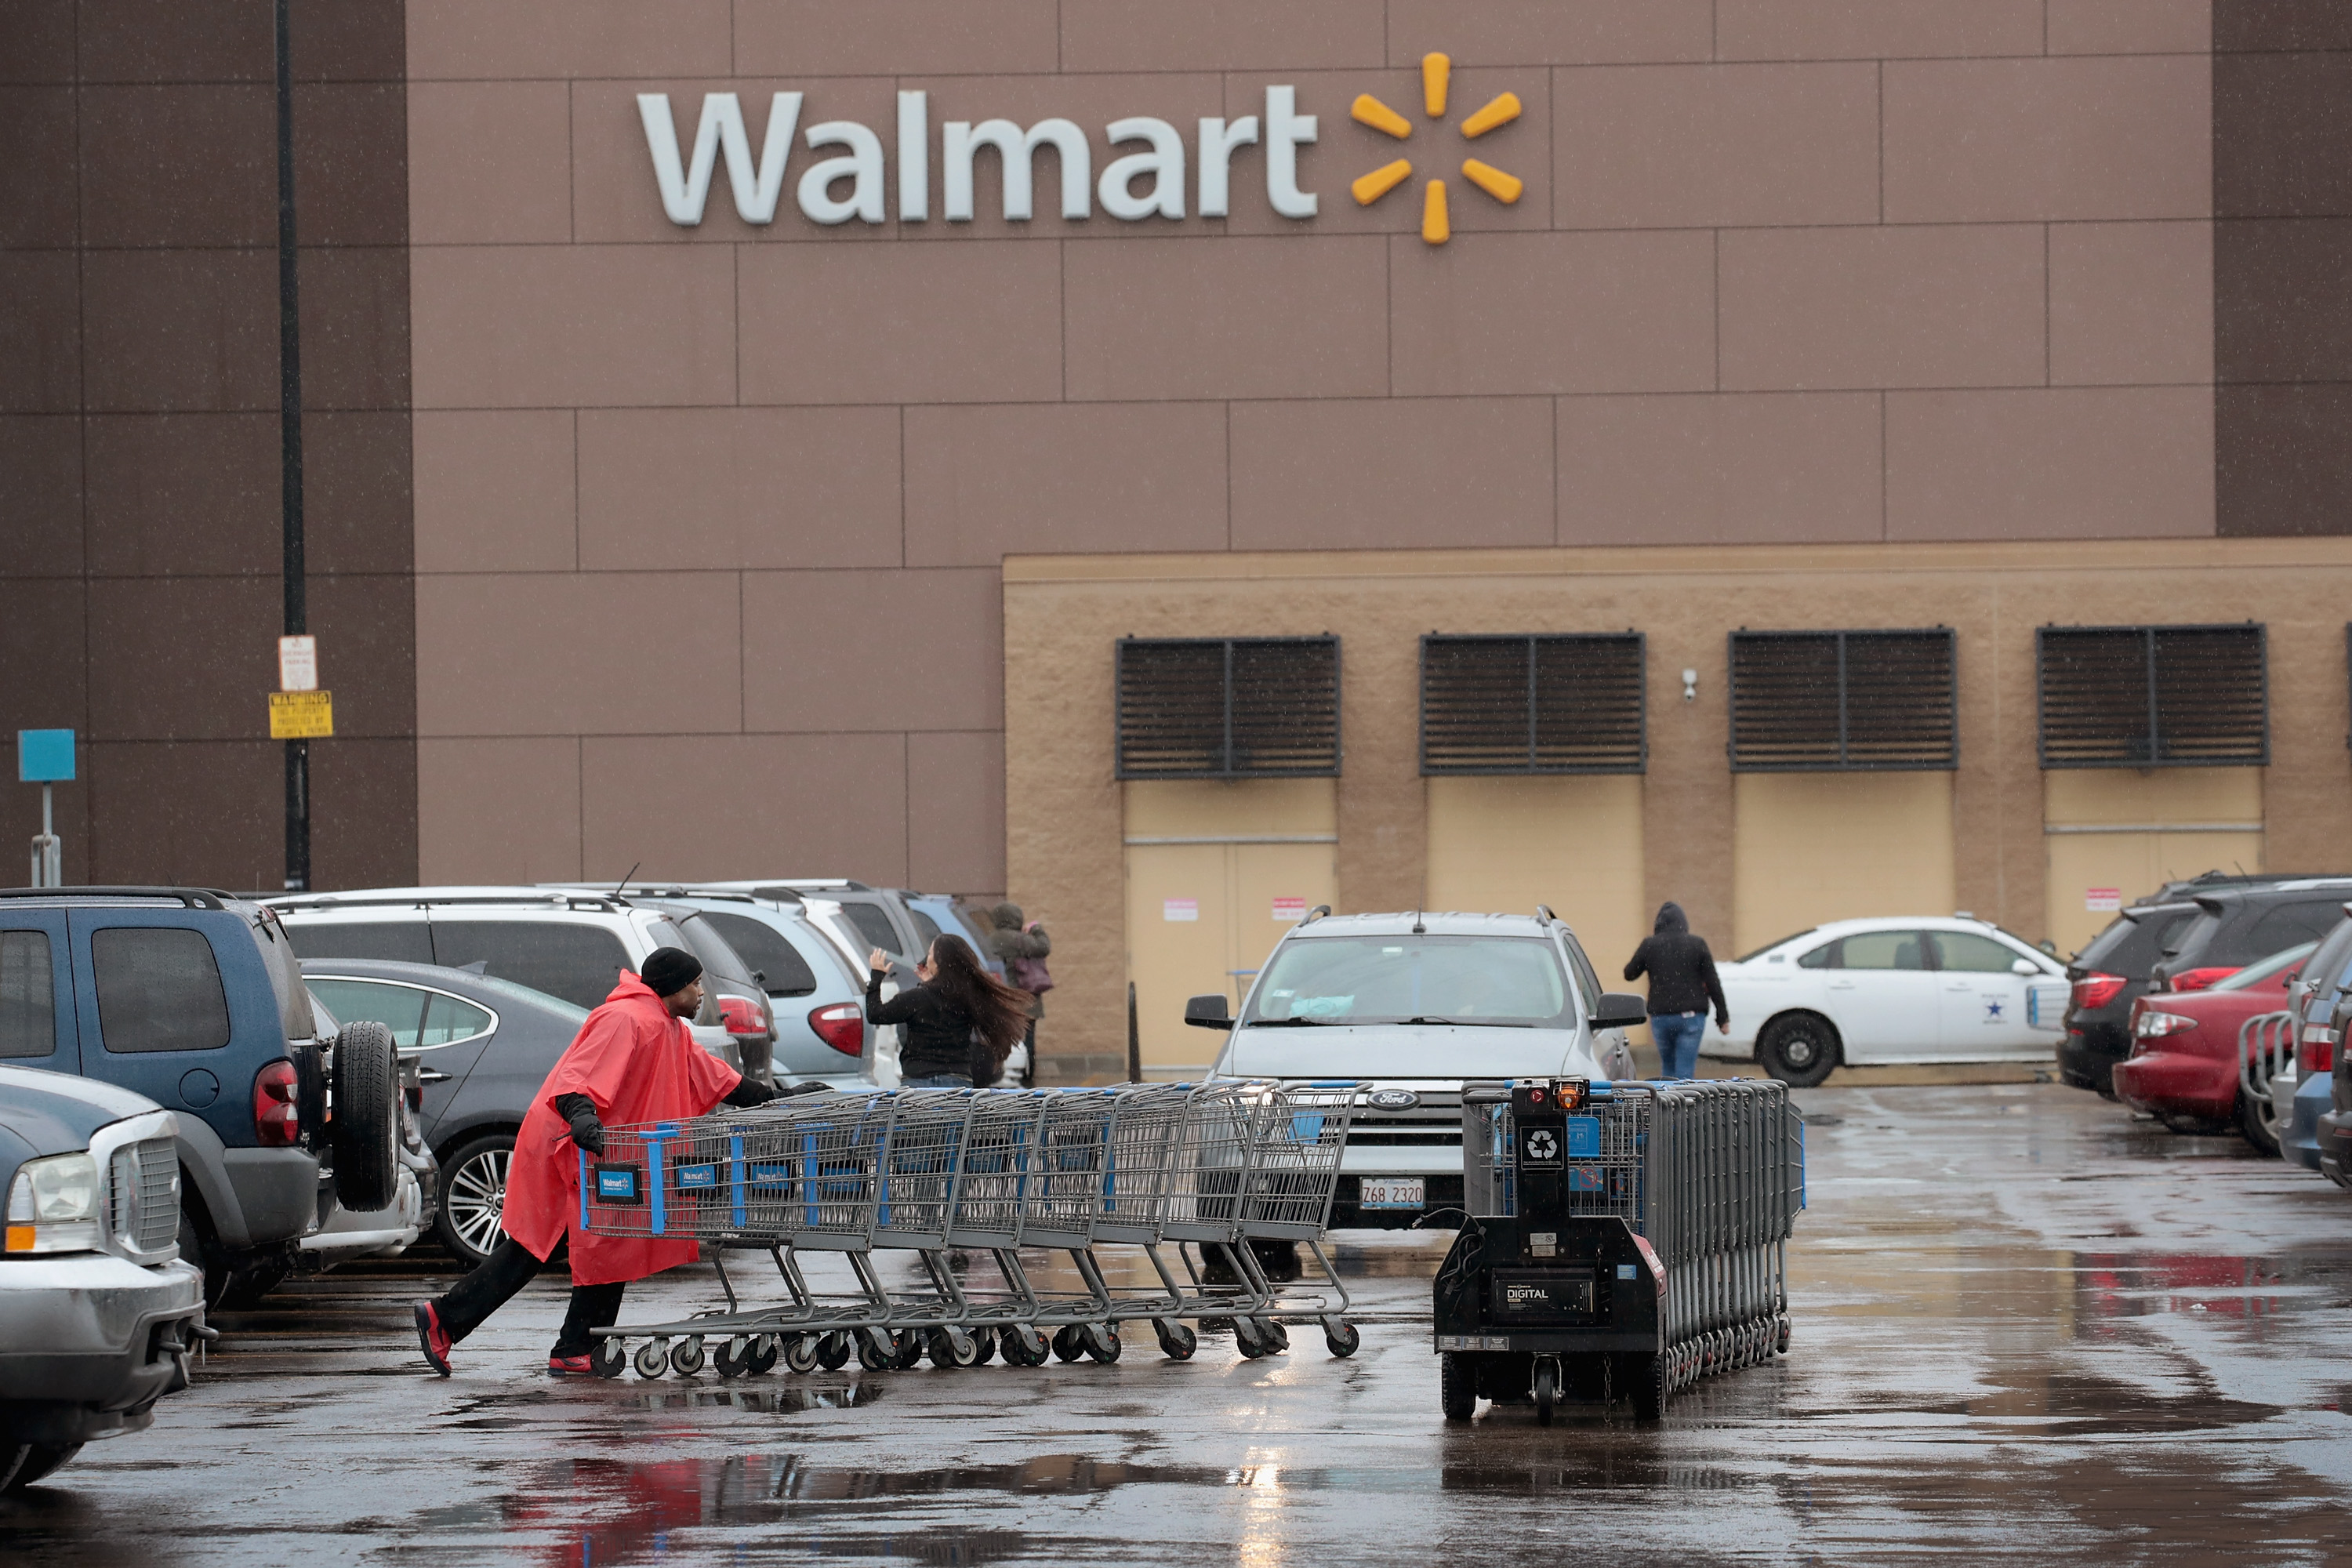 Walmart security checked the CCTV camera to confirm the mother's allegations.